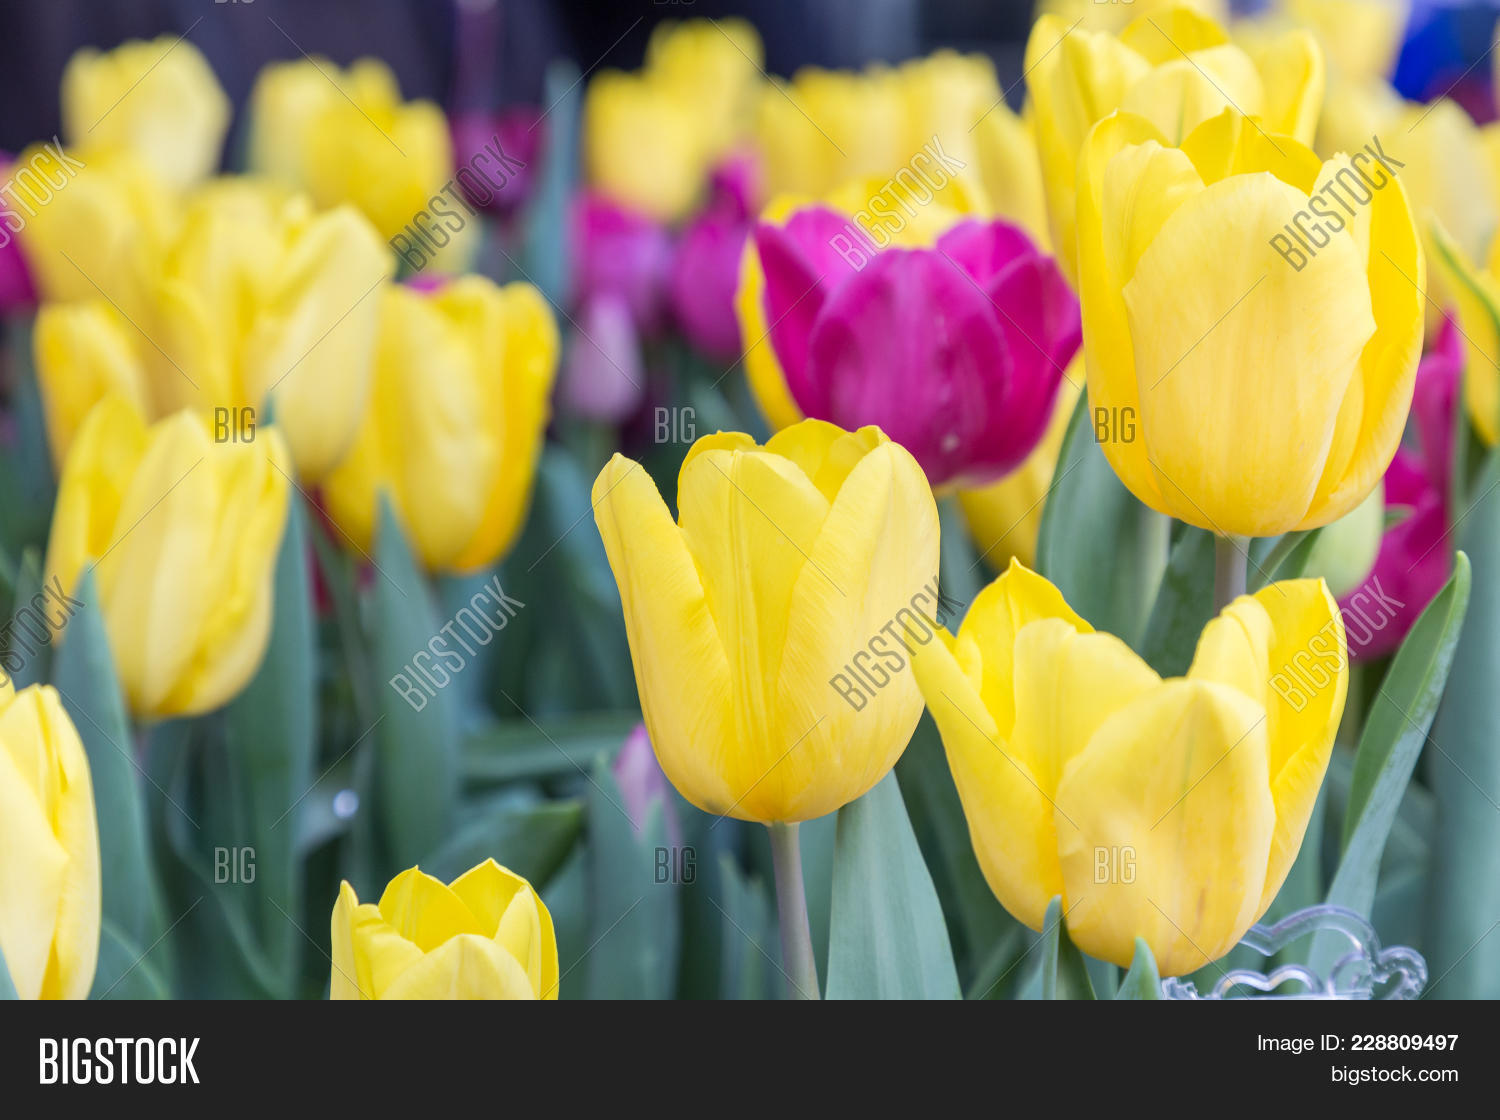 Tulip flower beautiful tulips image photo bigstock tulip flower beautiful tulips flower in tulip field at winter or spring day colorful izmirmasajfo